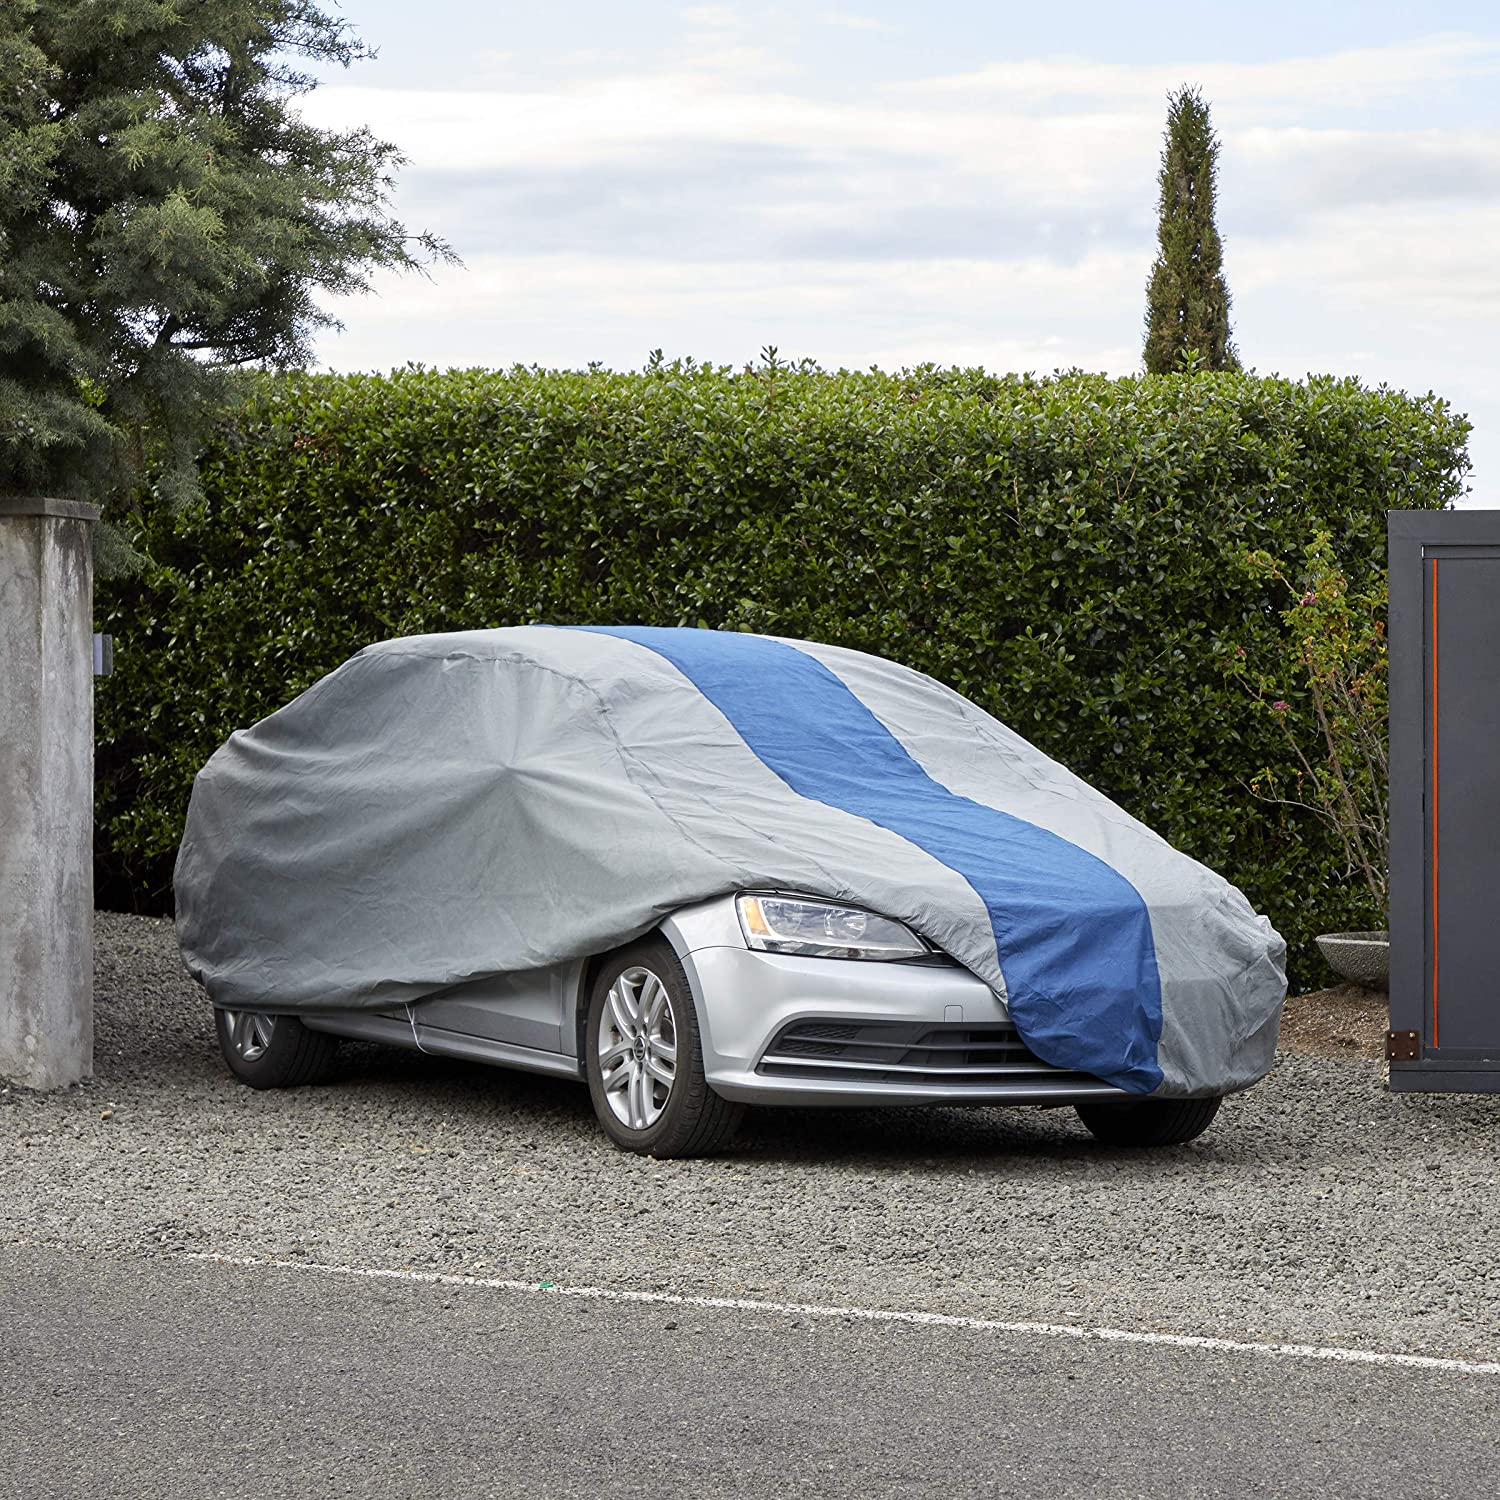 Duck Covers Double Defender Car Cover for Sedans up to 19